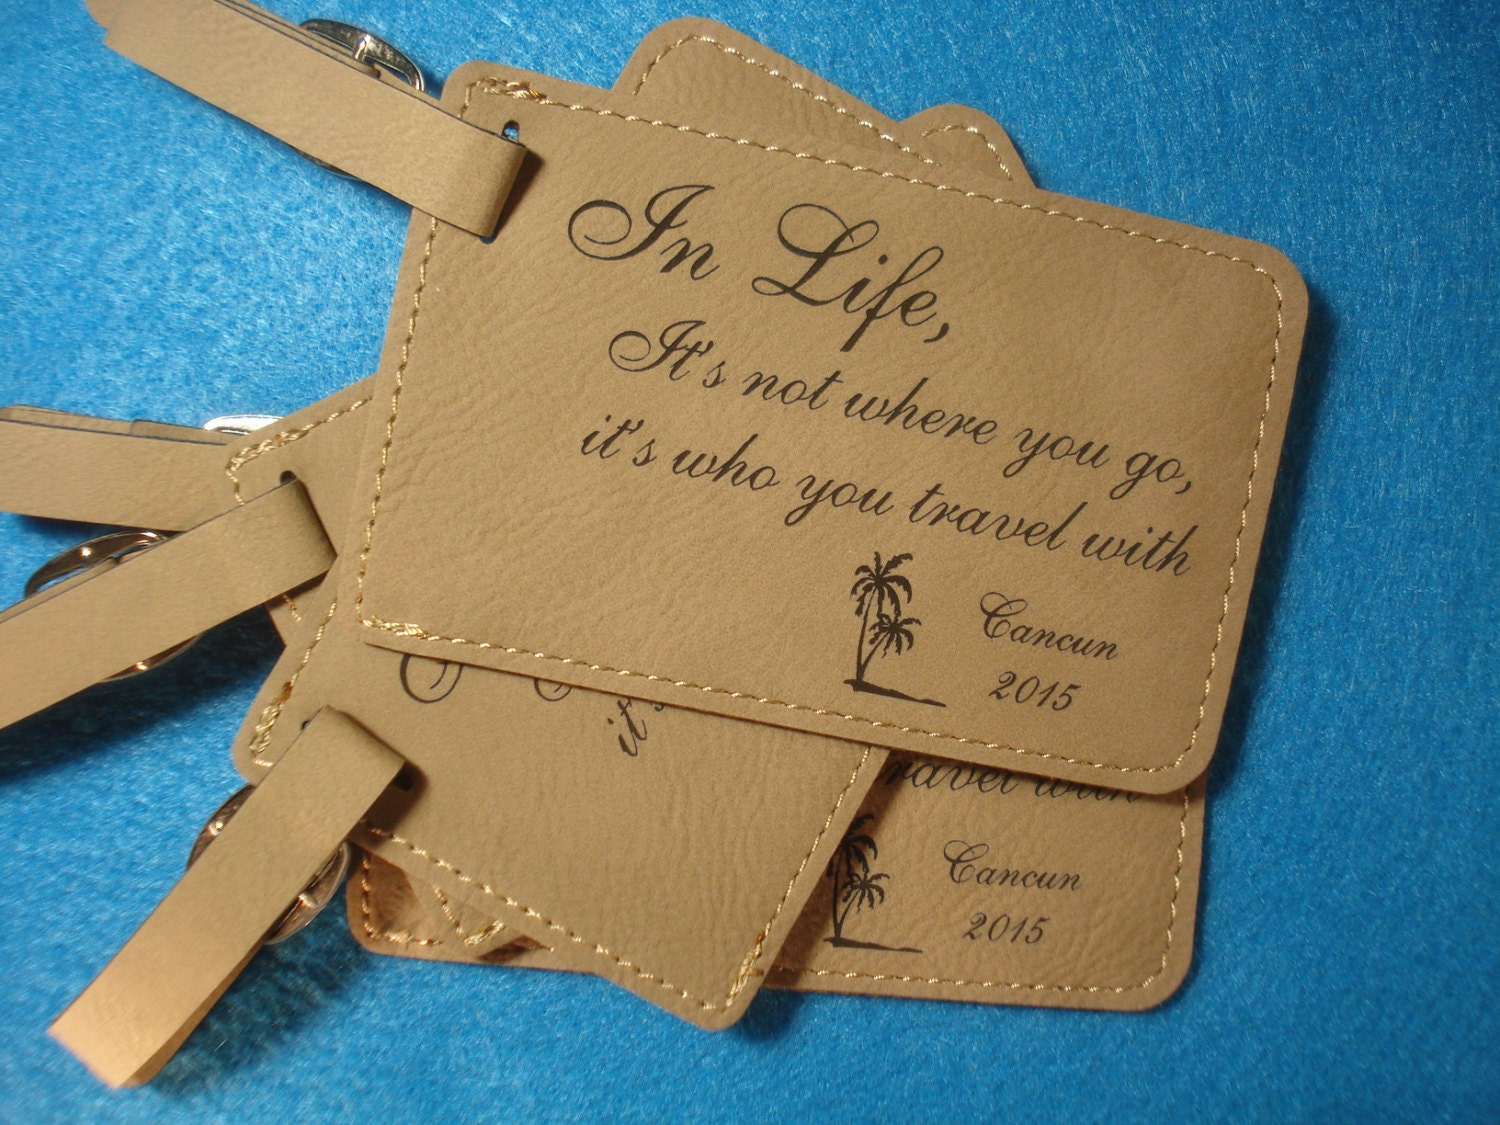 Wedding Favor Luggage Tags Leather : Leather Luggage Tags 100 Custom WEDDING FAVORS Leatherette